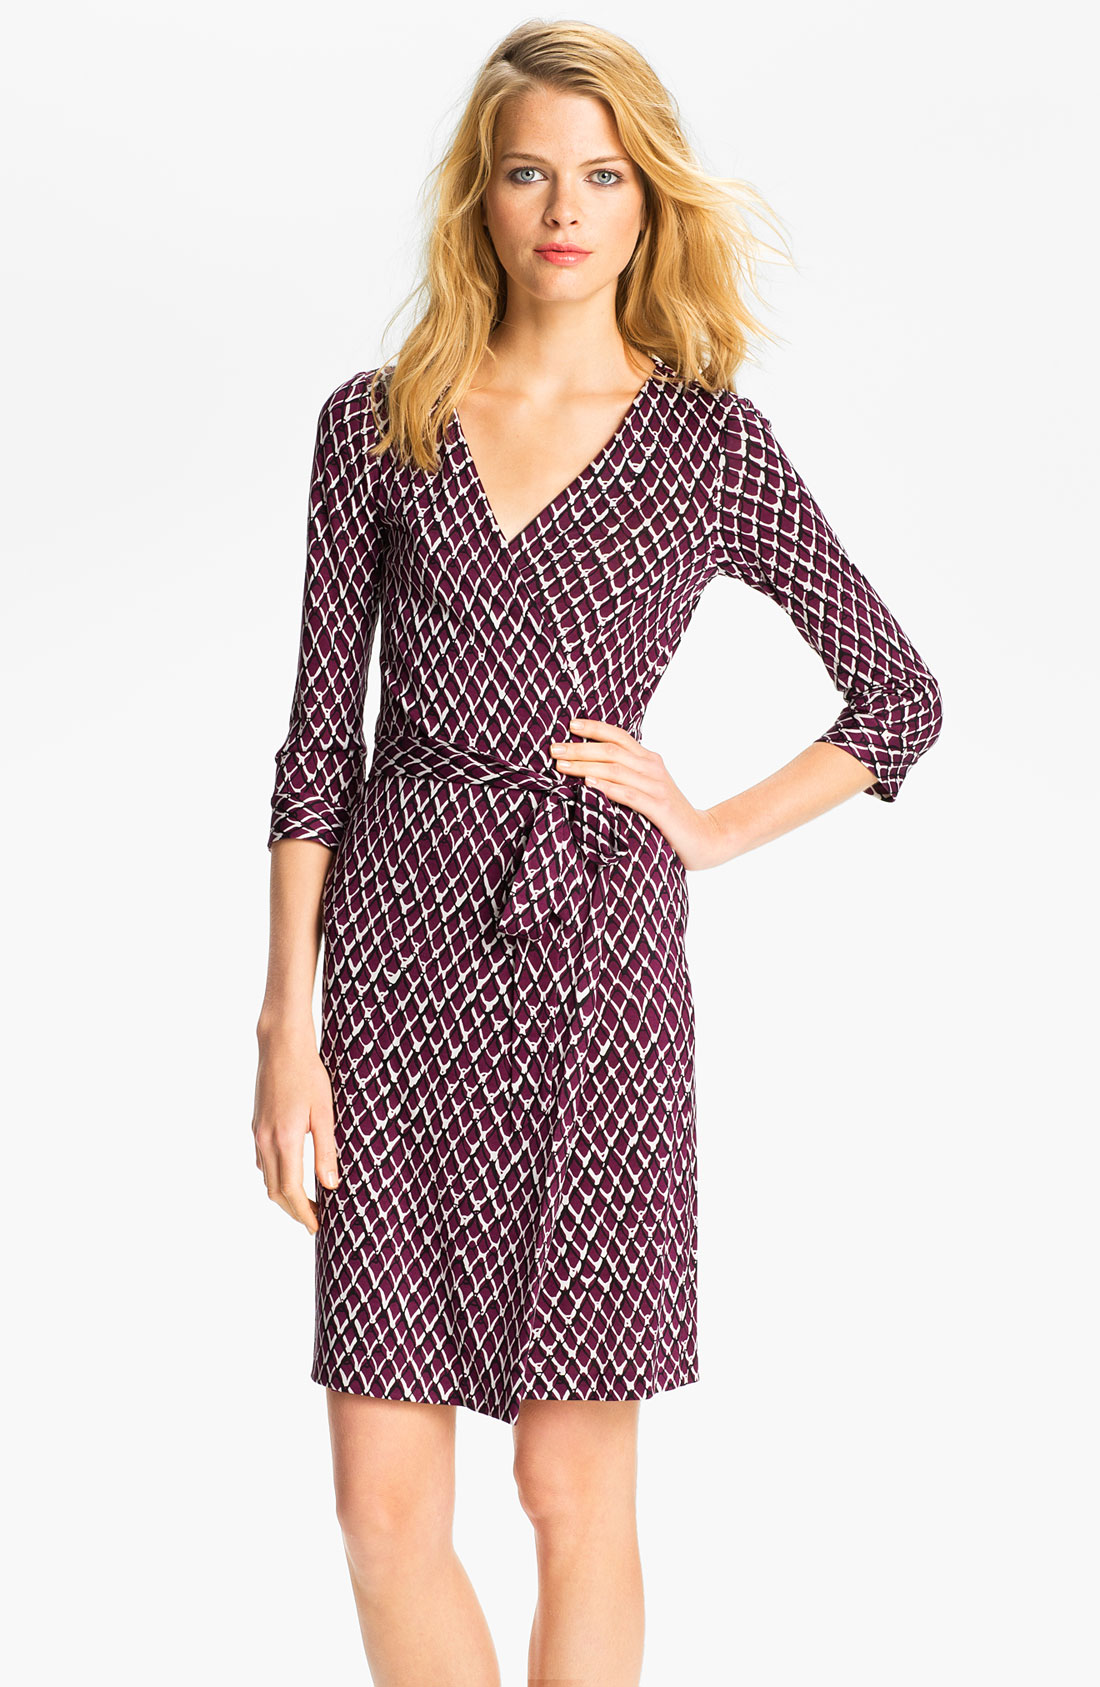 Diane von furstenberg new julian two dress in purple plum for Diane von furstenberg clothes